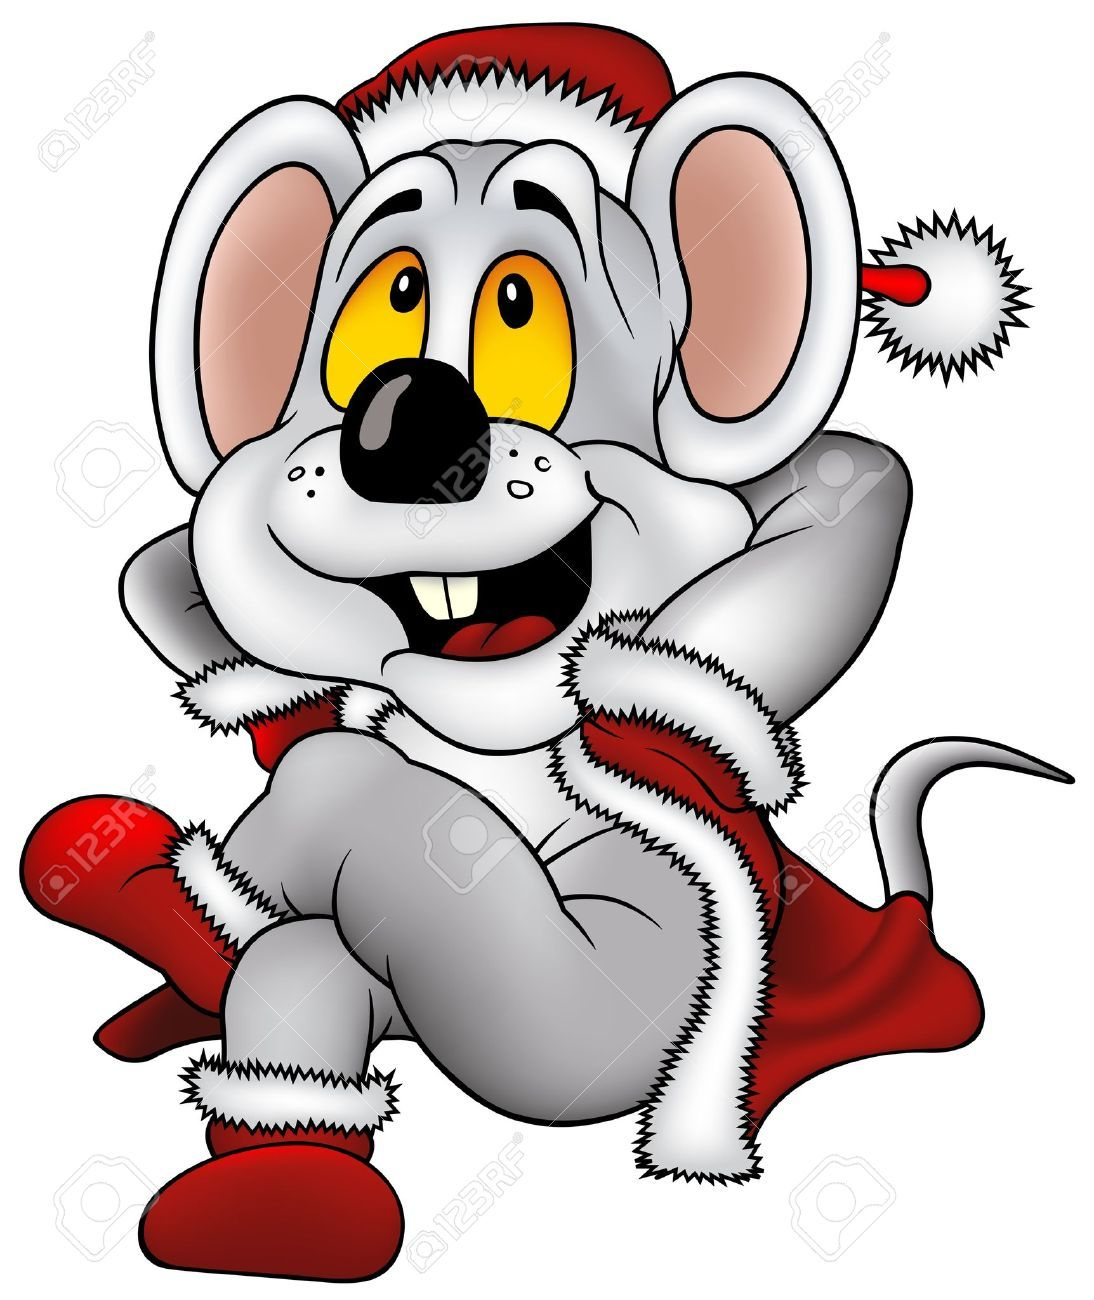 Christmas mouse clipart free 6 » Clipart Portal.